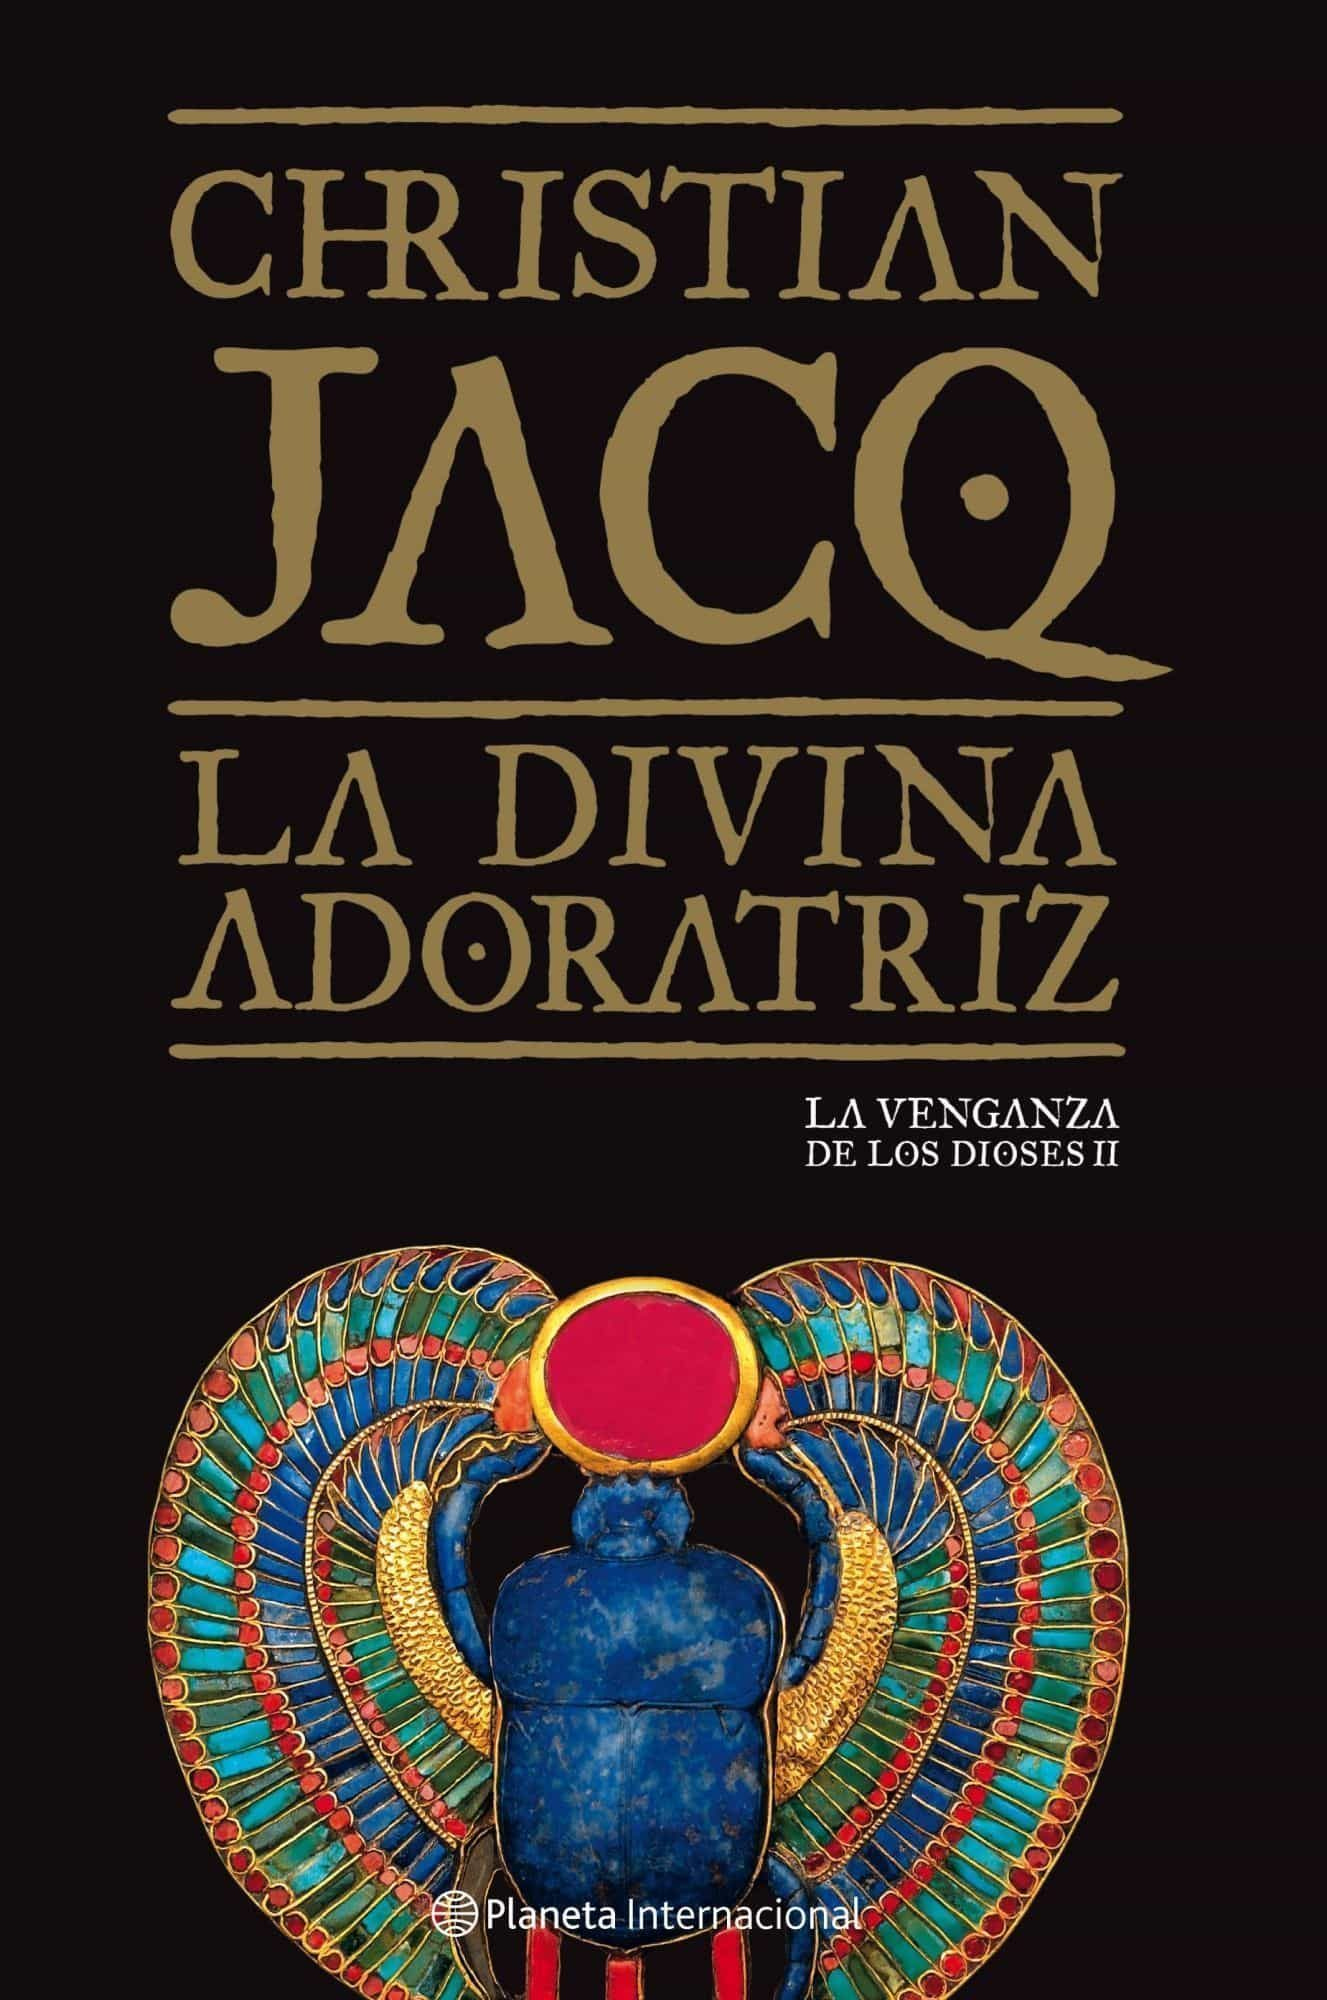 descargar LA DIVINA ADORATRIZ pdf, ebook